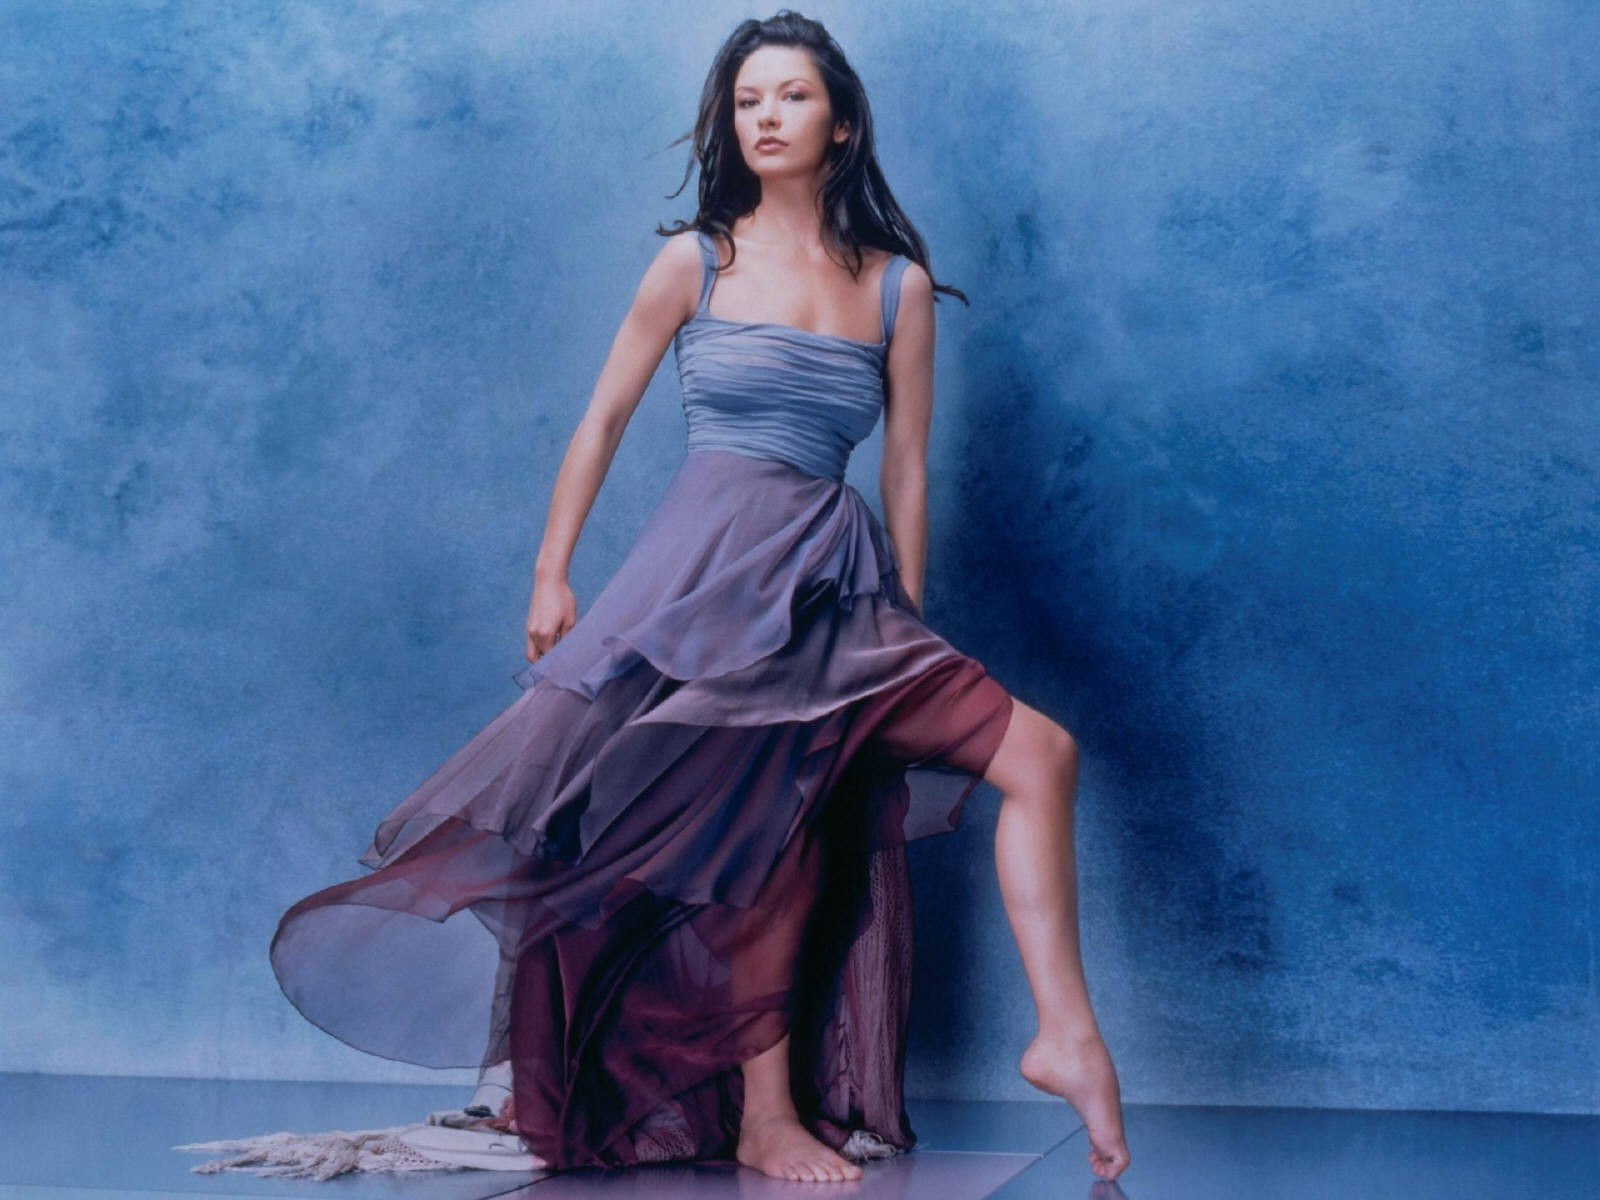 Wallpaper di Catherine Zeta-Jones a piedi scalzi